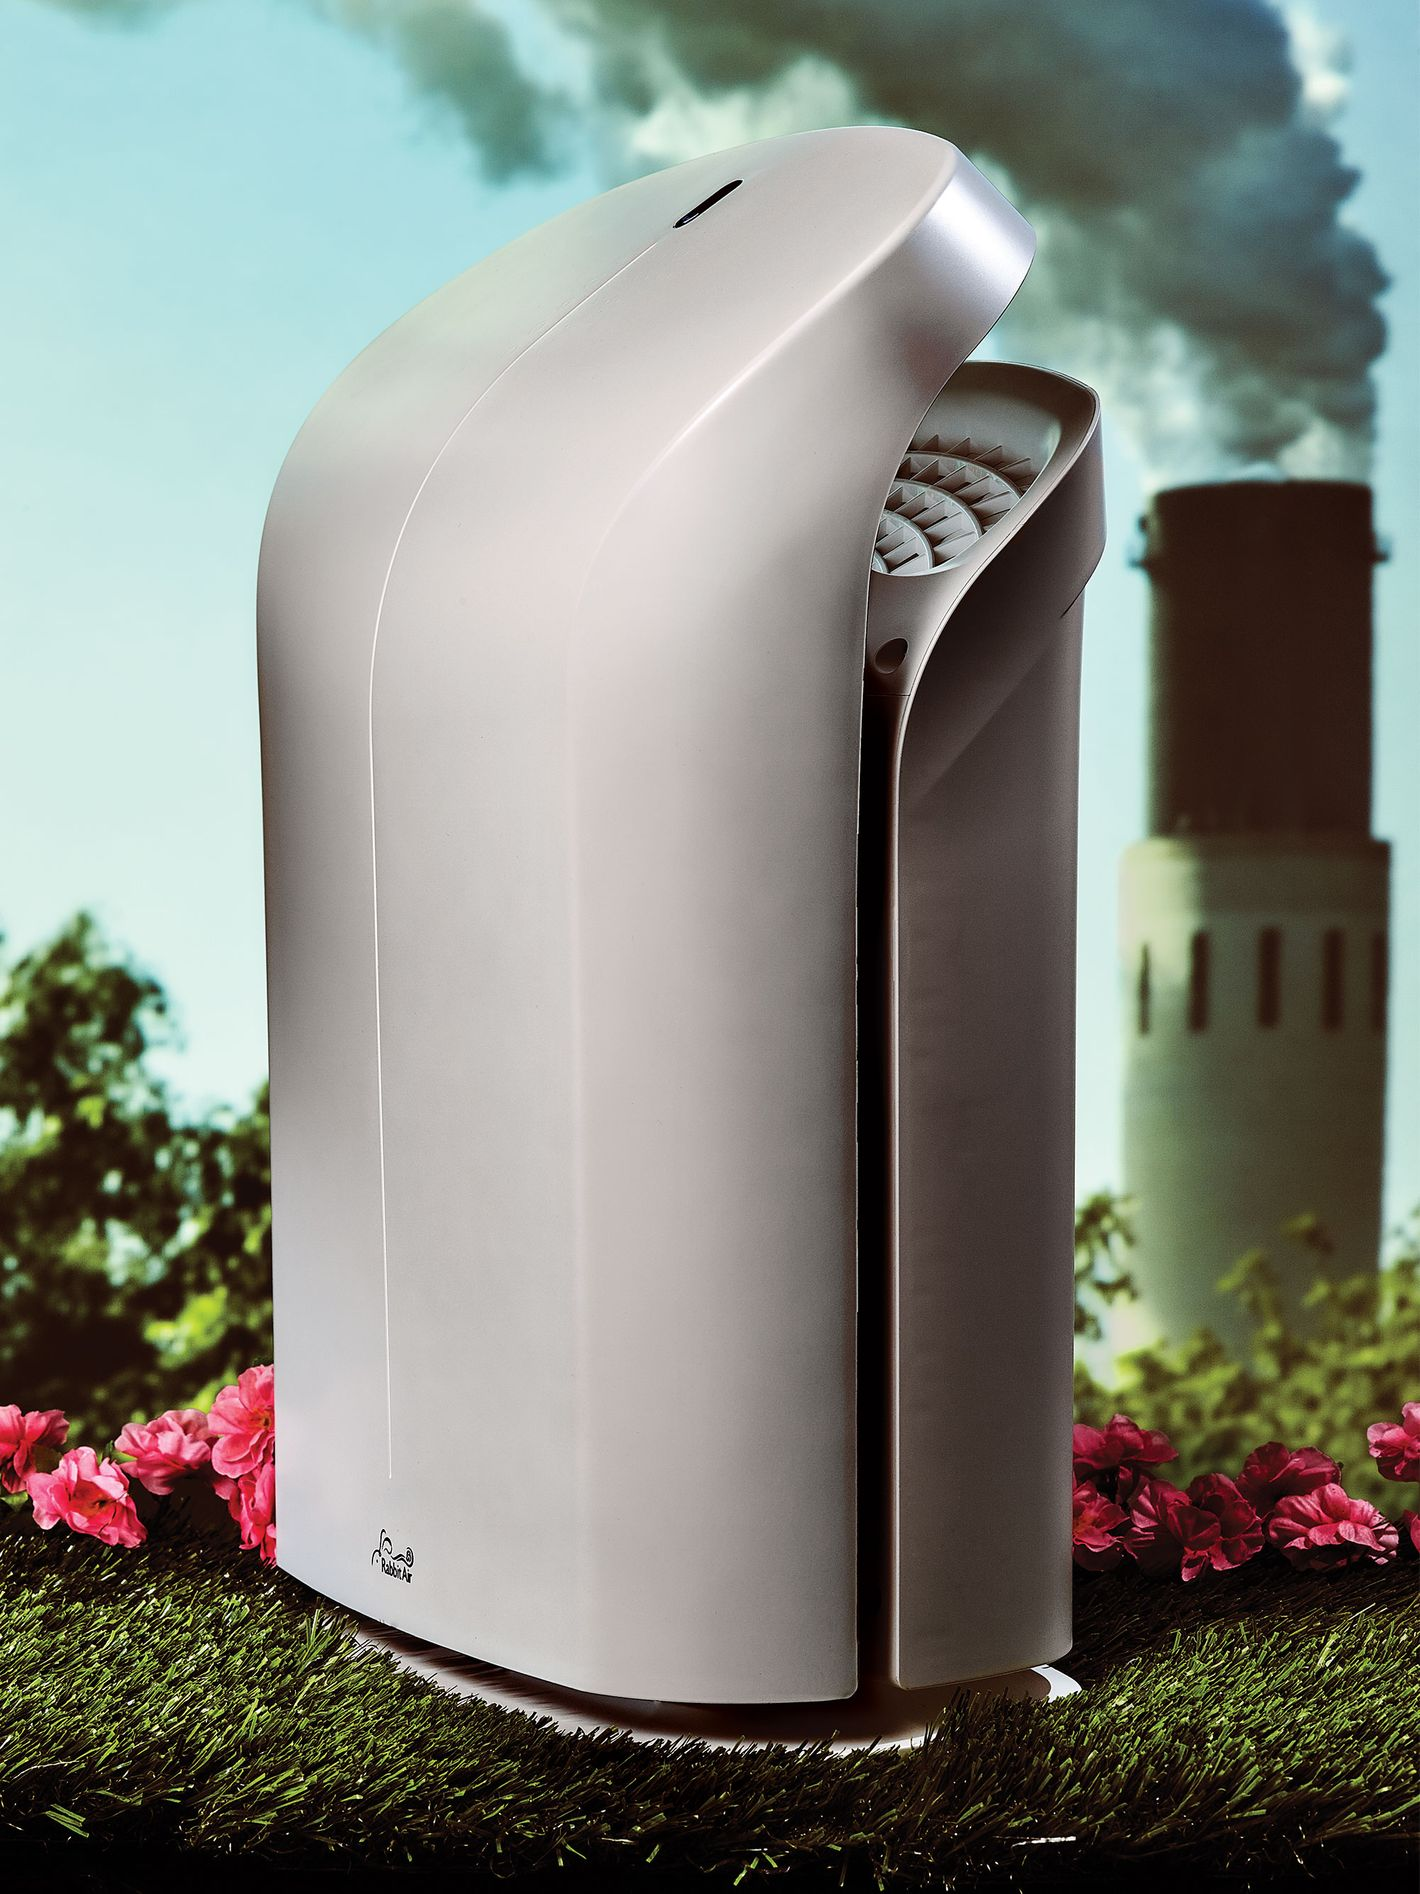 The Best Air Purifier for Allergy Season Reviews 2017